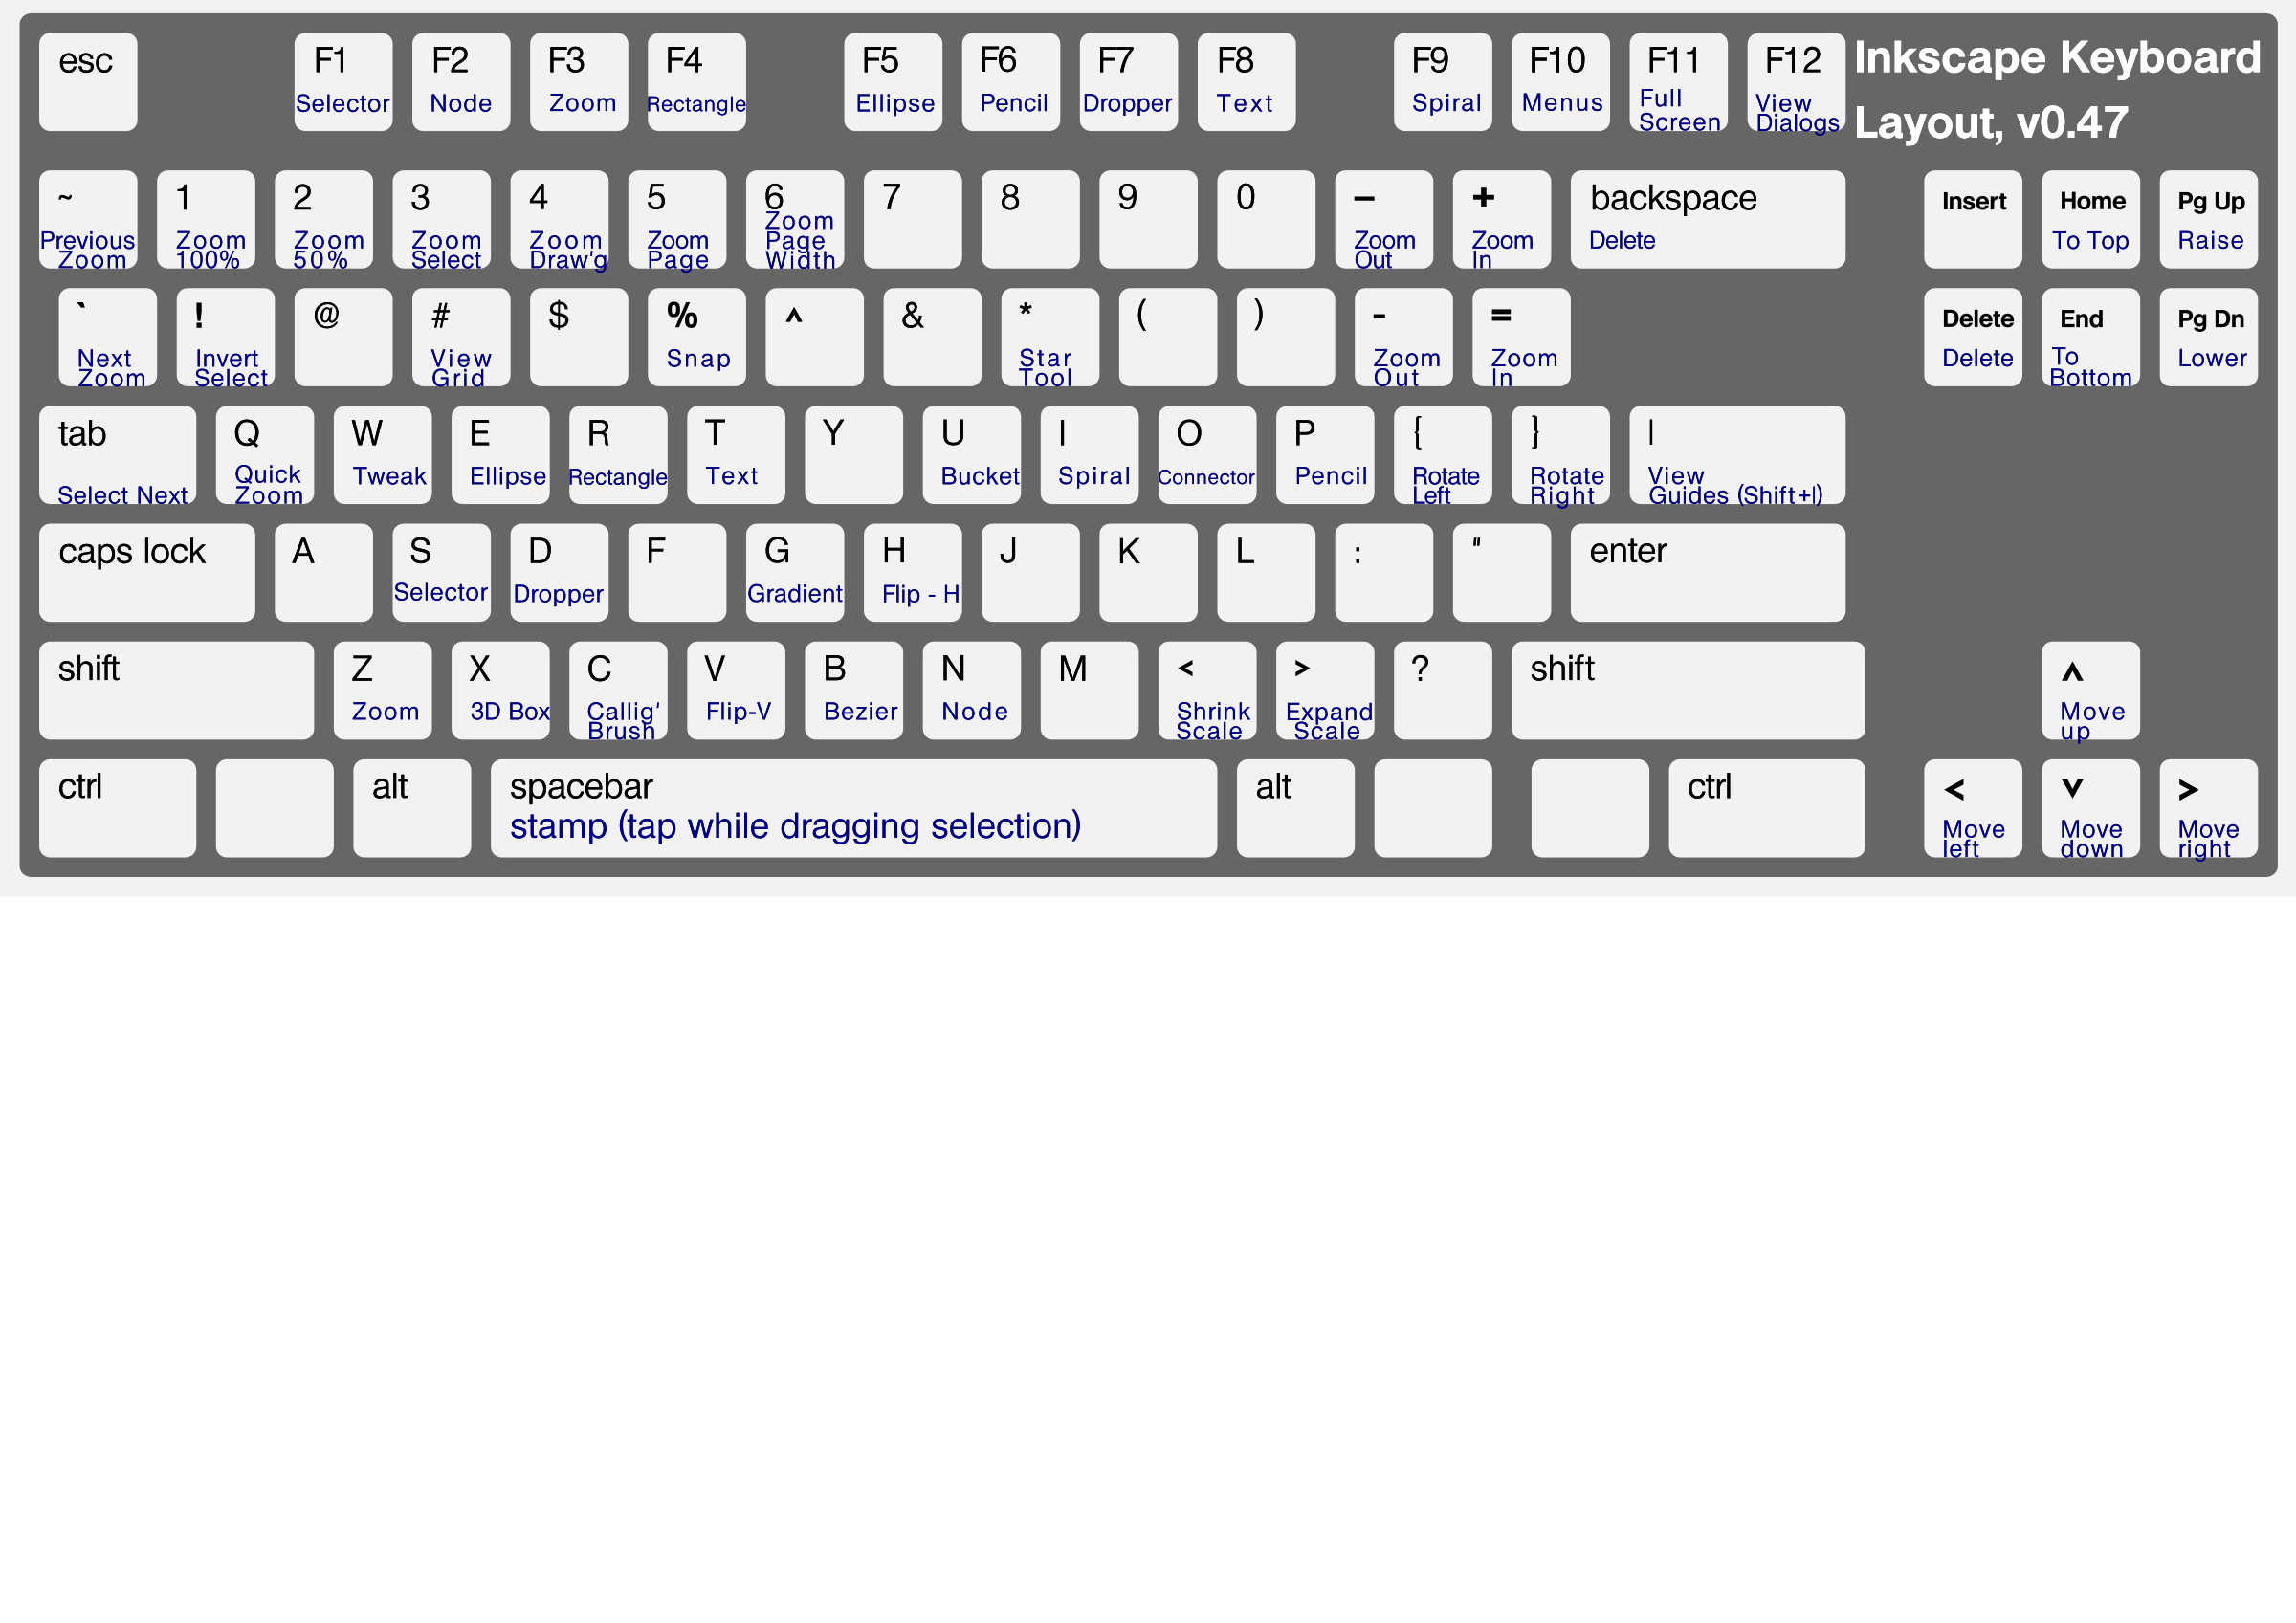 Inkscape png to vector. Clipart keyboard layout big